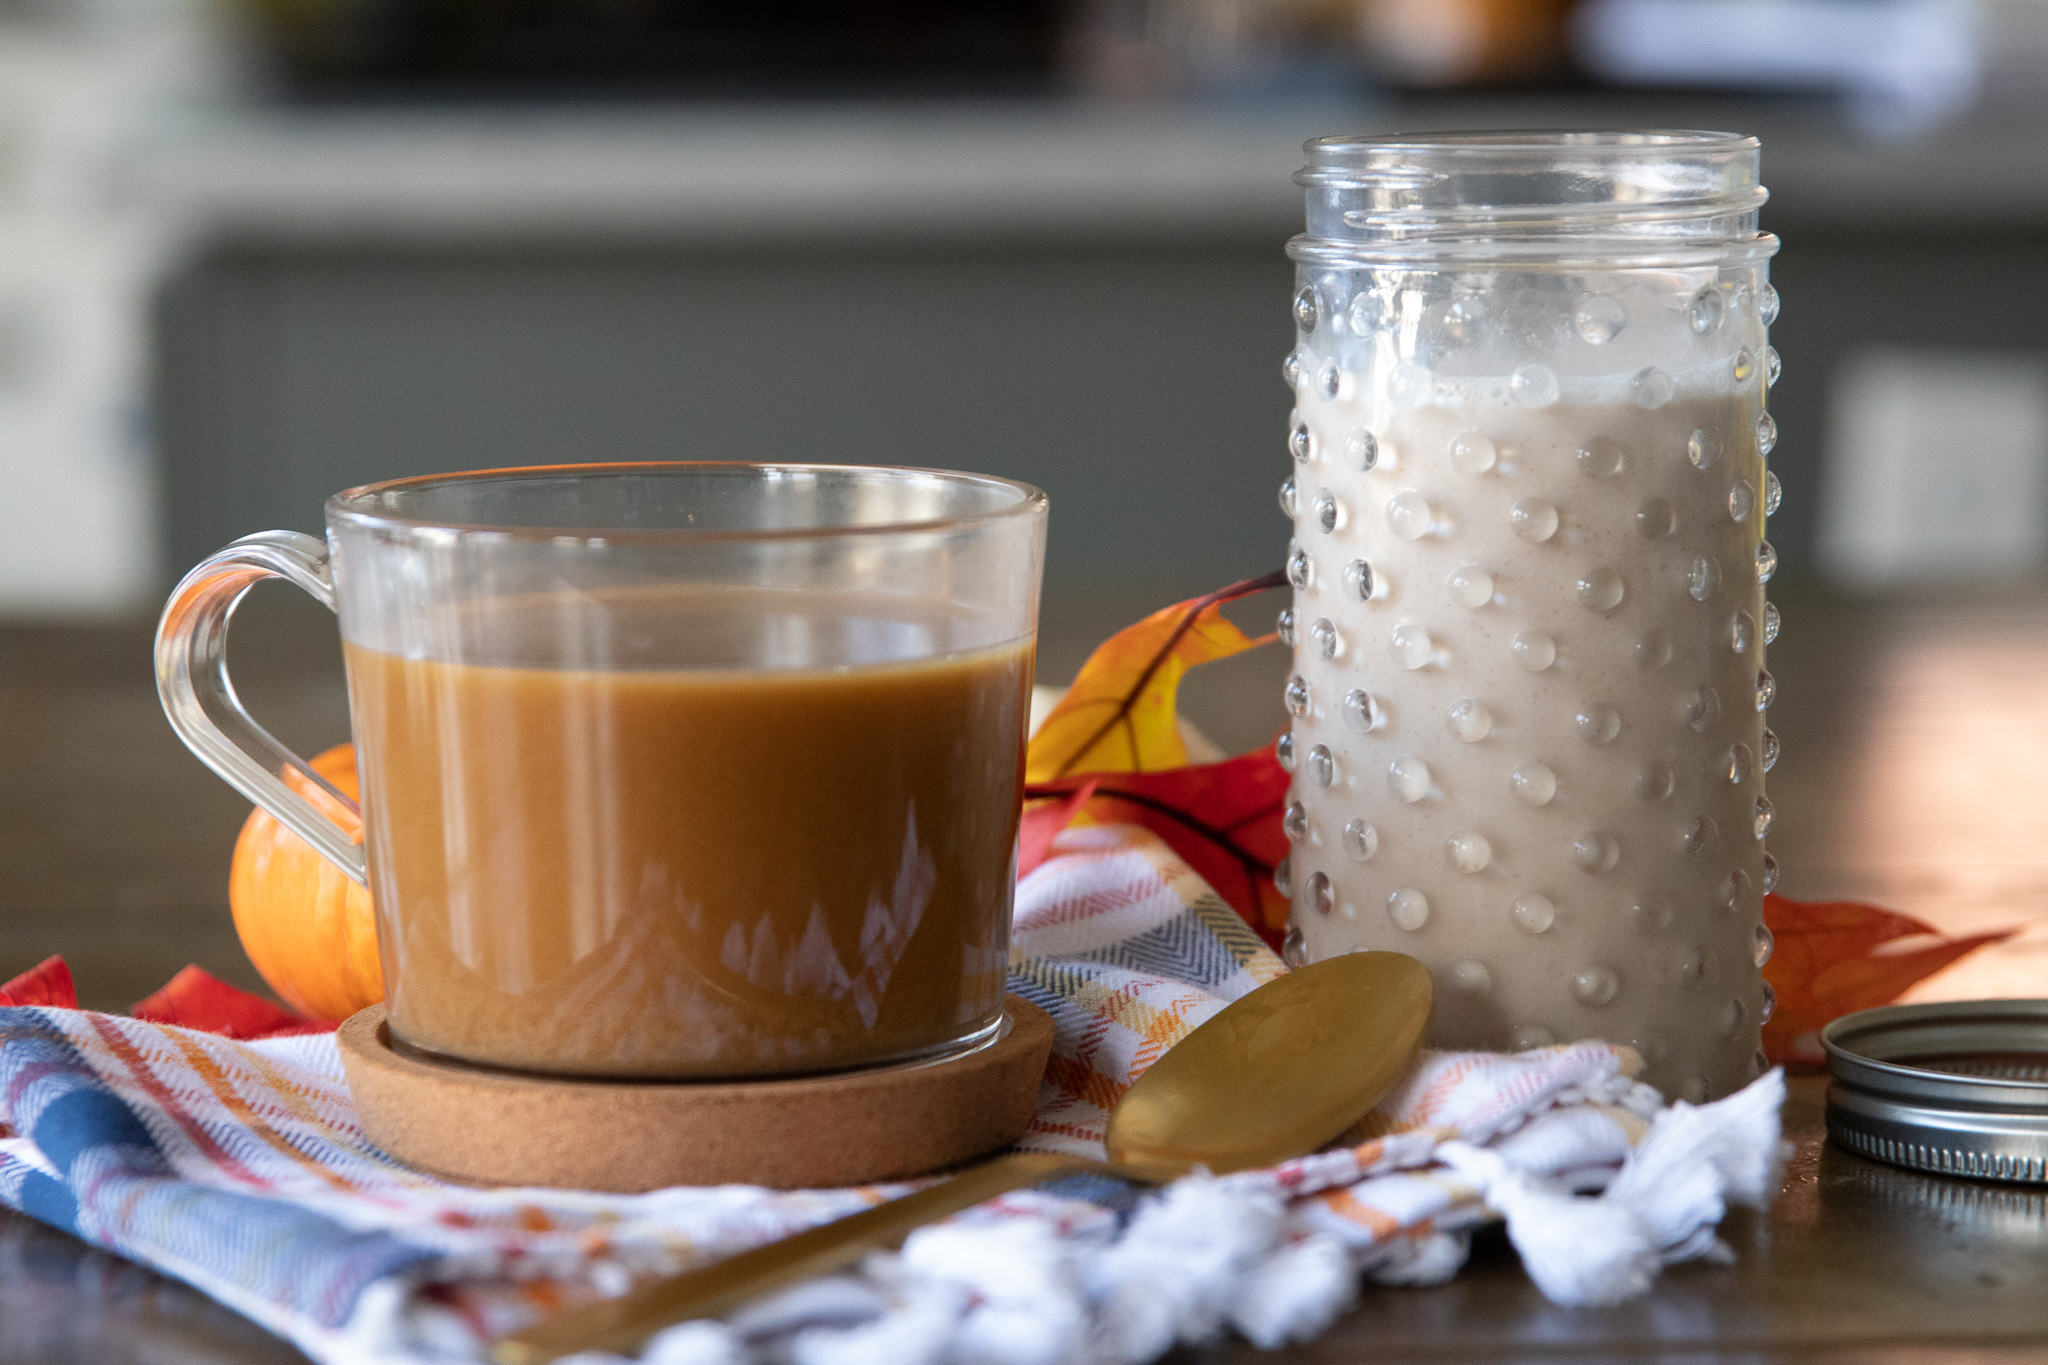 Cashew cream has long been my favorite vegan coffee cream substitute, and I love spicing it up for the holidays. With just the right amount of pumpkin pie spice, and maple syrup for sweetness, this pumpkin spice creamer is sure to be a new seasonal favorite!